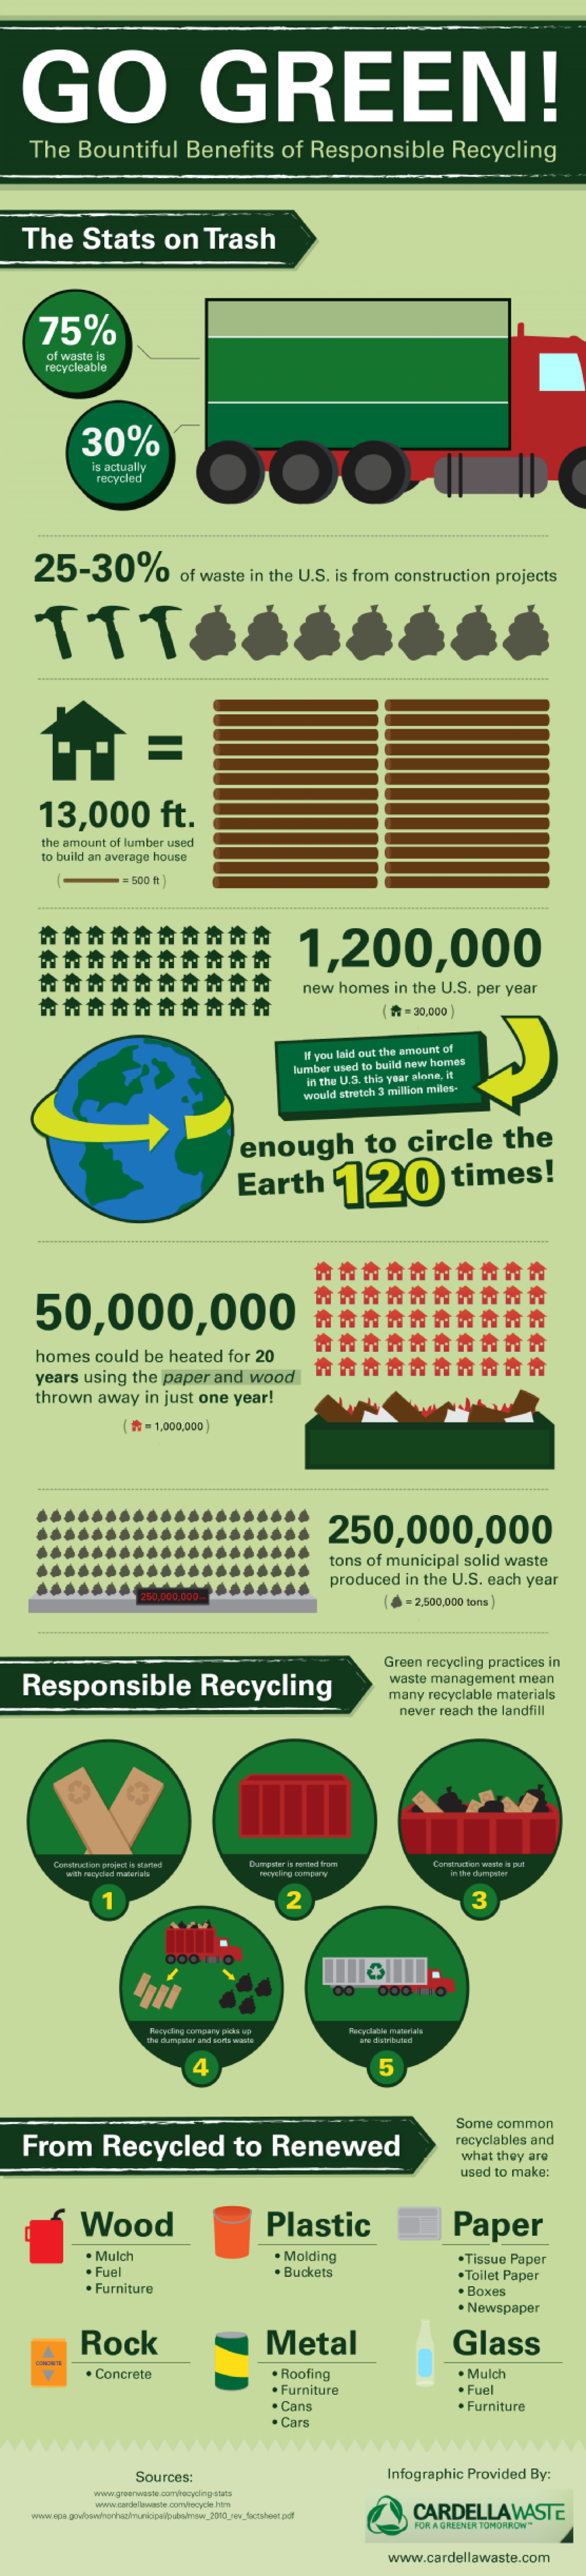 Go Green! The Bountiful Benefits of Responsible Recycling  Infographic